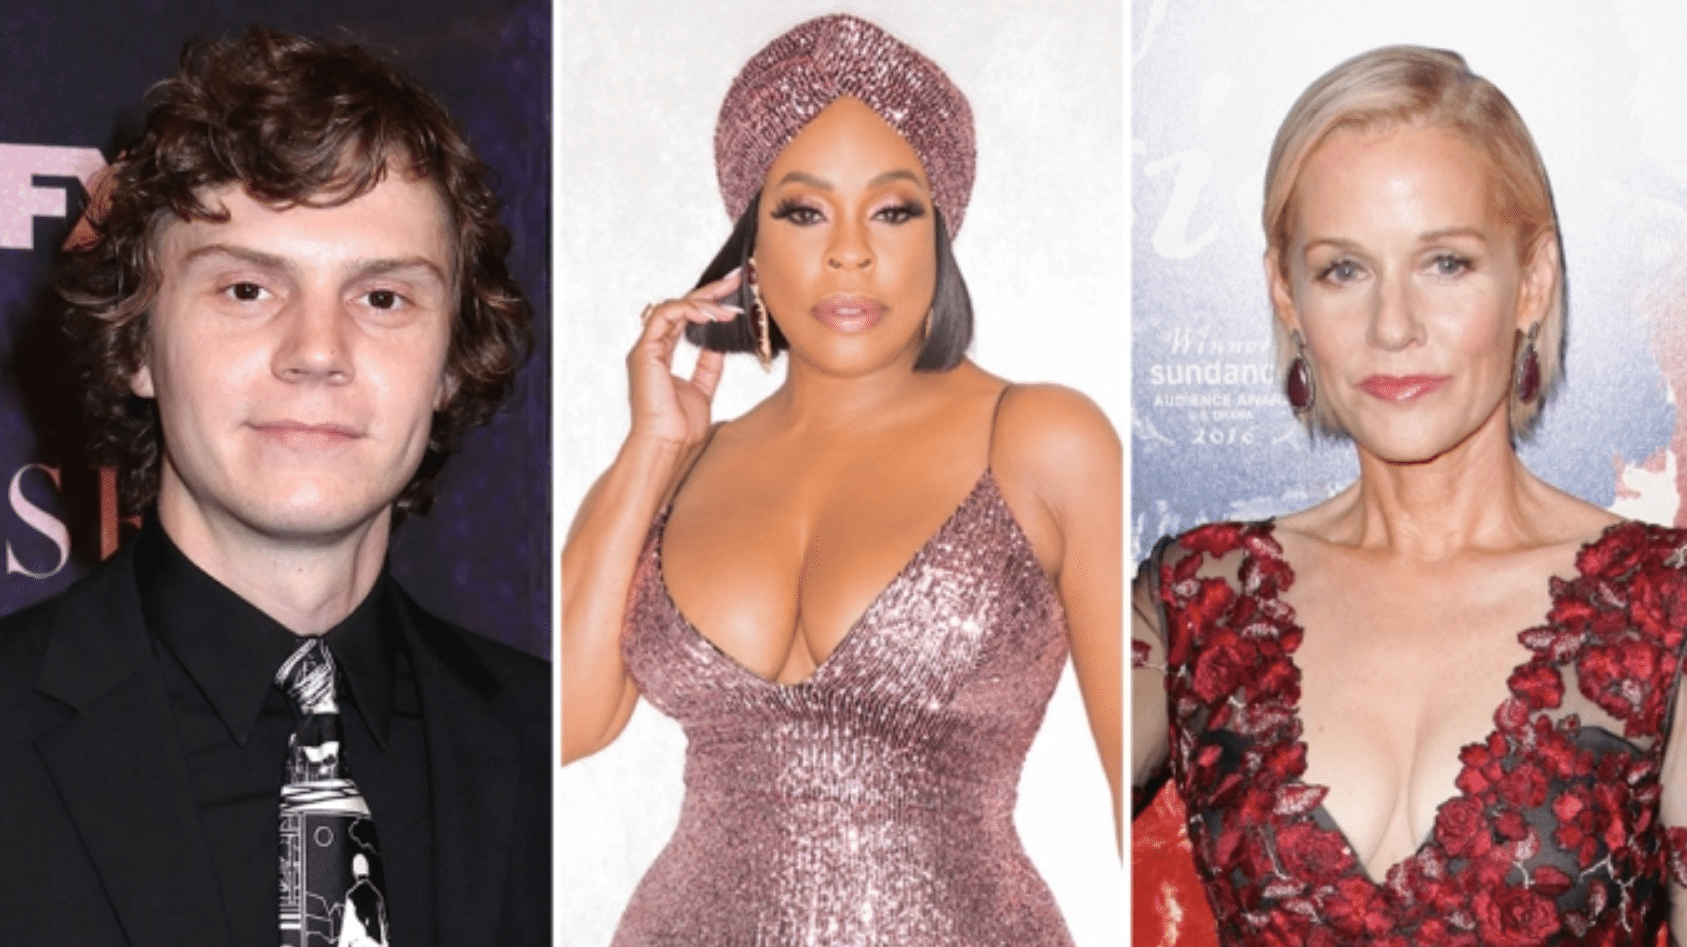 Evan Peters Playing Jeffrey Dahmer In 'Monster'; Niecy Nash & More Join Cast